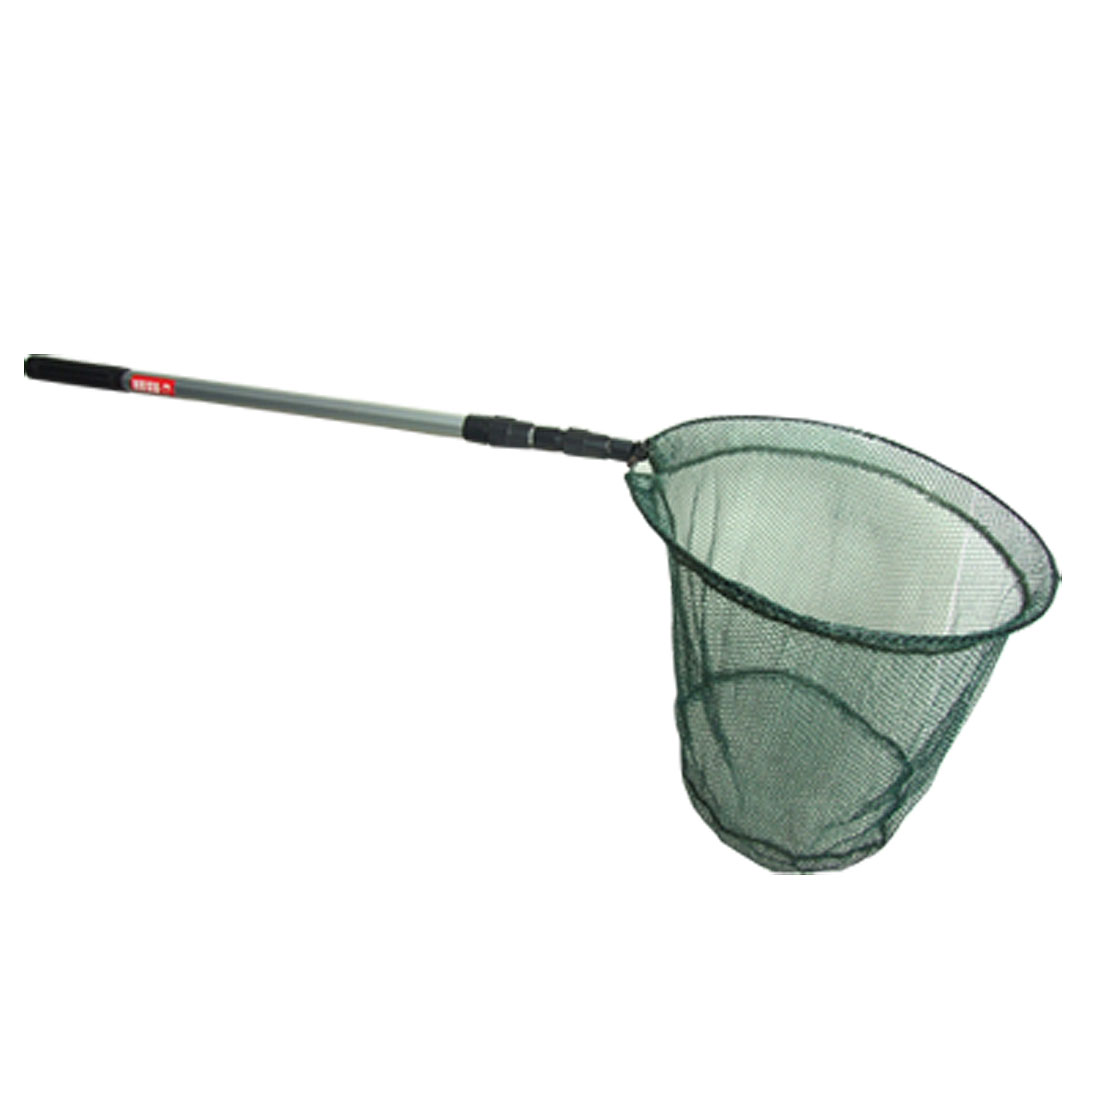 "Telescopic 3 Sections Handle 14.2"" Dia 4 Fold Landing Net"